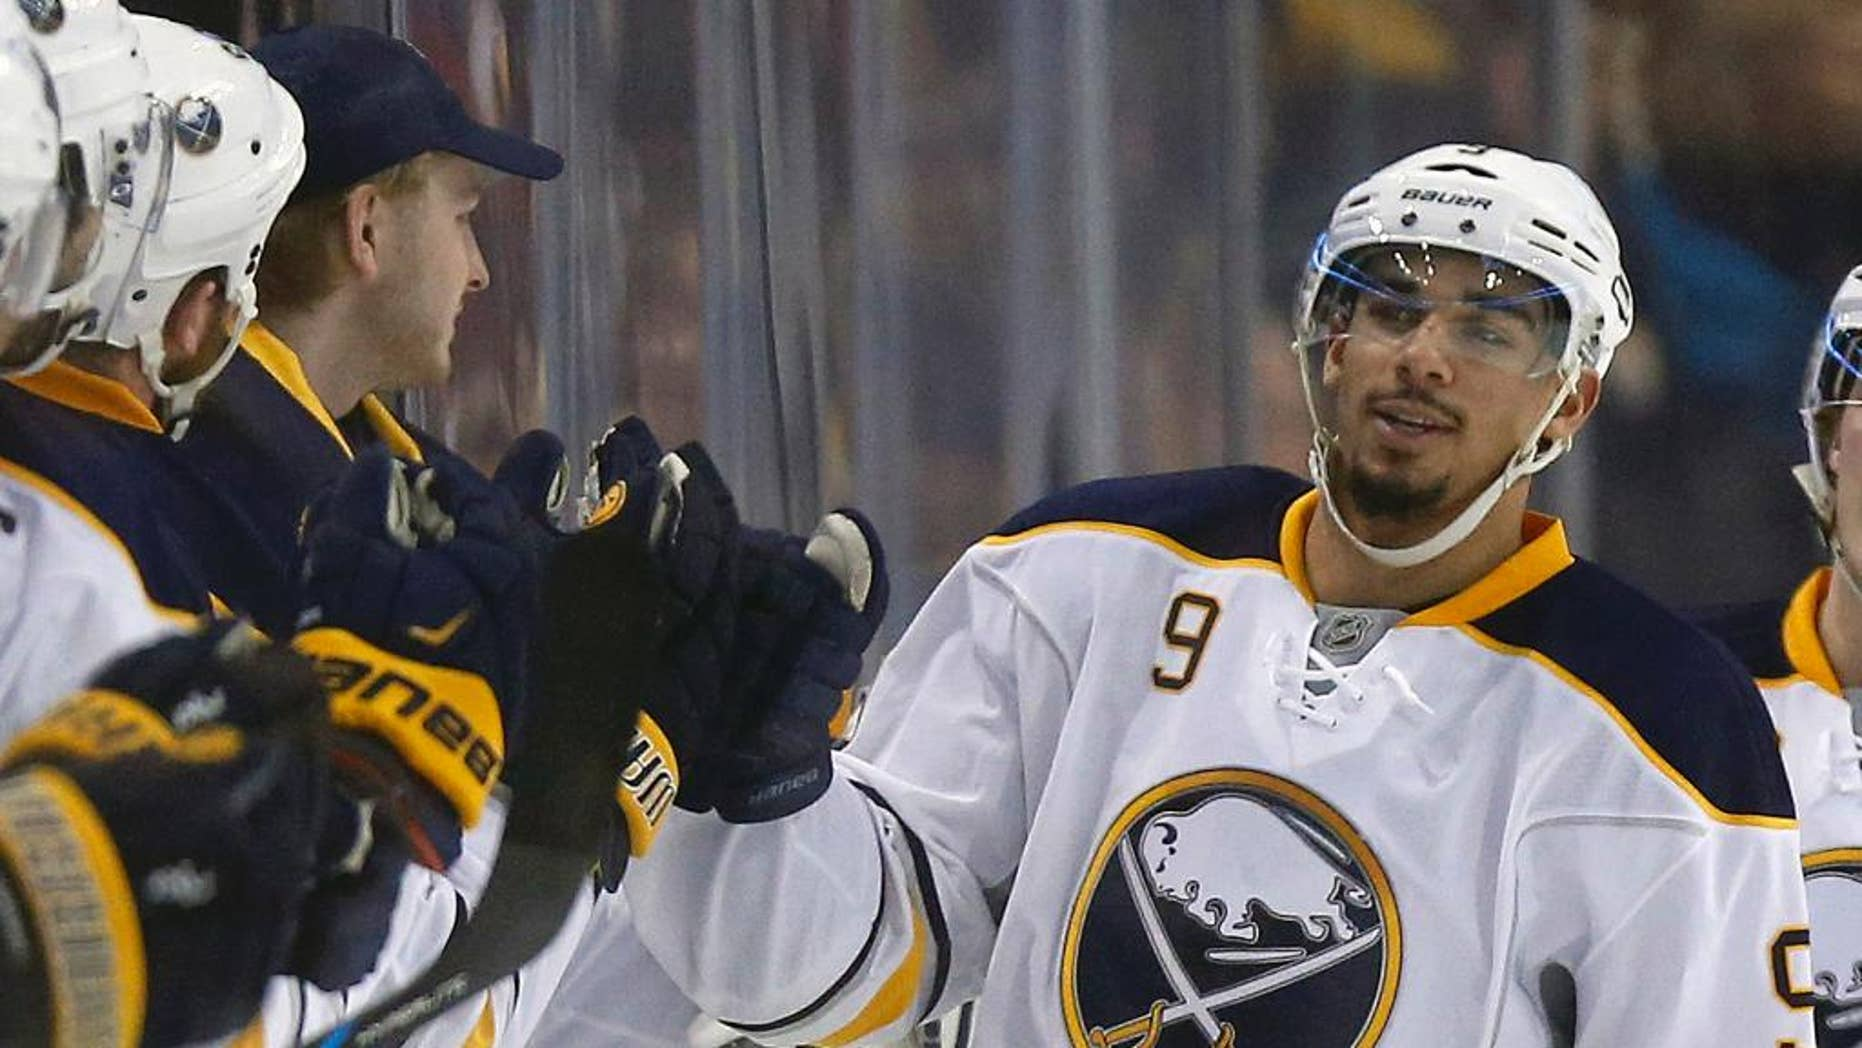 """FILE - In this Dec. 26, 2015, file photo, Buffalo Sabres forward Evander Kane (9) celebrates his goal during the second period of an NHL hockey game against the Boston Bruins in Boston. Kane says a woman's civil suit claiming he seriously injured her during an attack in his hotel room is meant solely to harass him. Kane calls the 21-year-old woman's allegations """"a sham"""" in a counterclaim filed in state Supreme Court last week. The filing, first reported by The Buffalo News on Tuesday, Sept. 20, 2016, seeks dismissal of the July 1 complaint and legal costs. (AP Photo/Michael Dwyer, File)"""